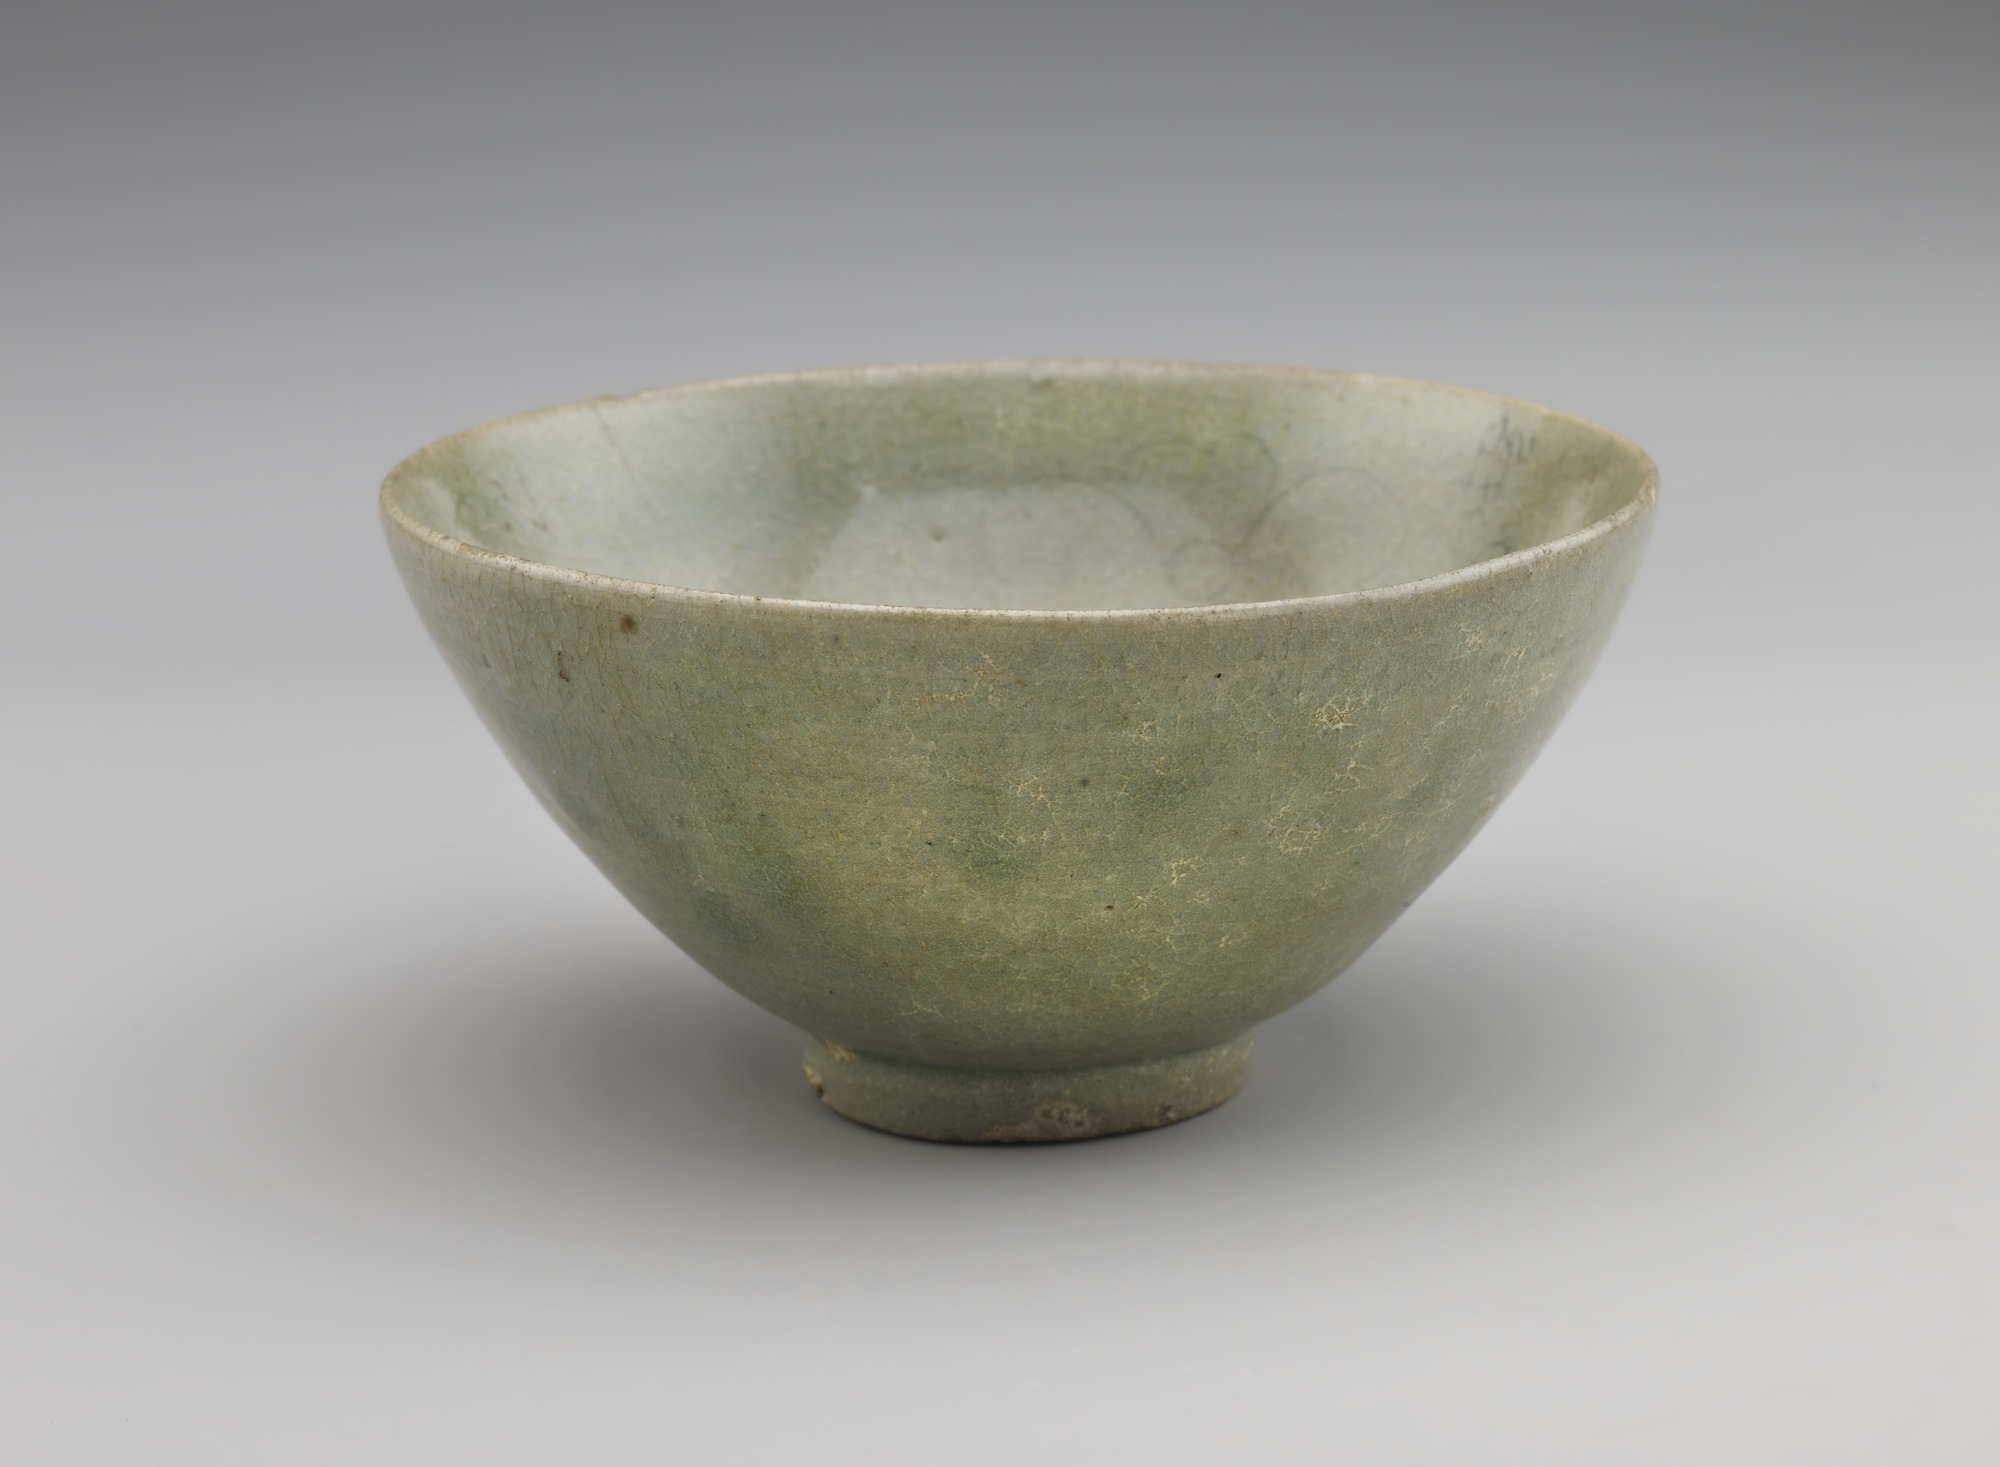 Bowl with incised floral decoration, profile